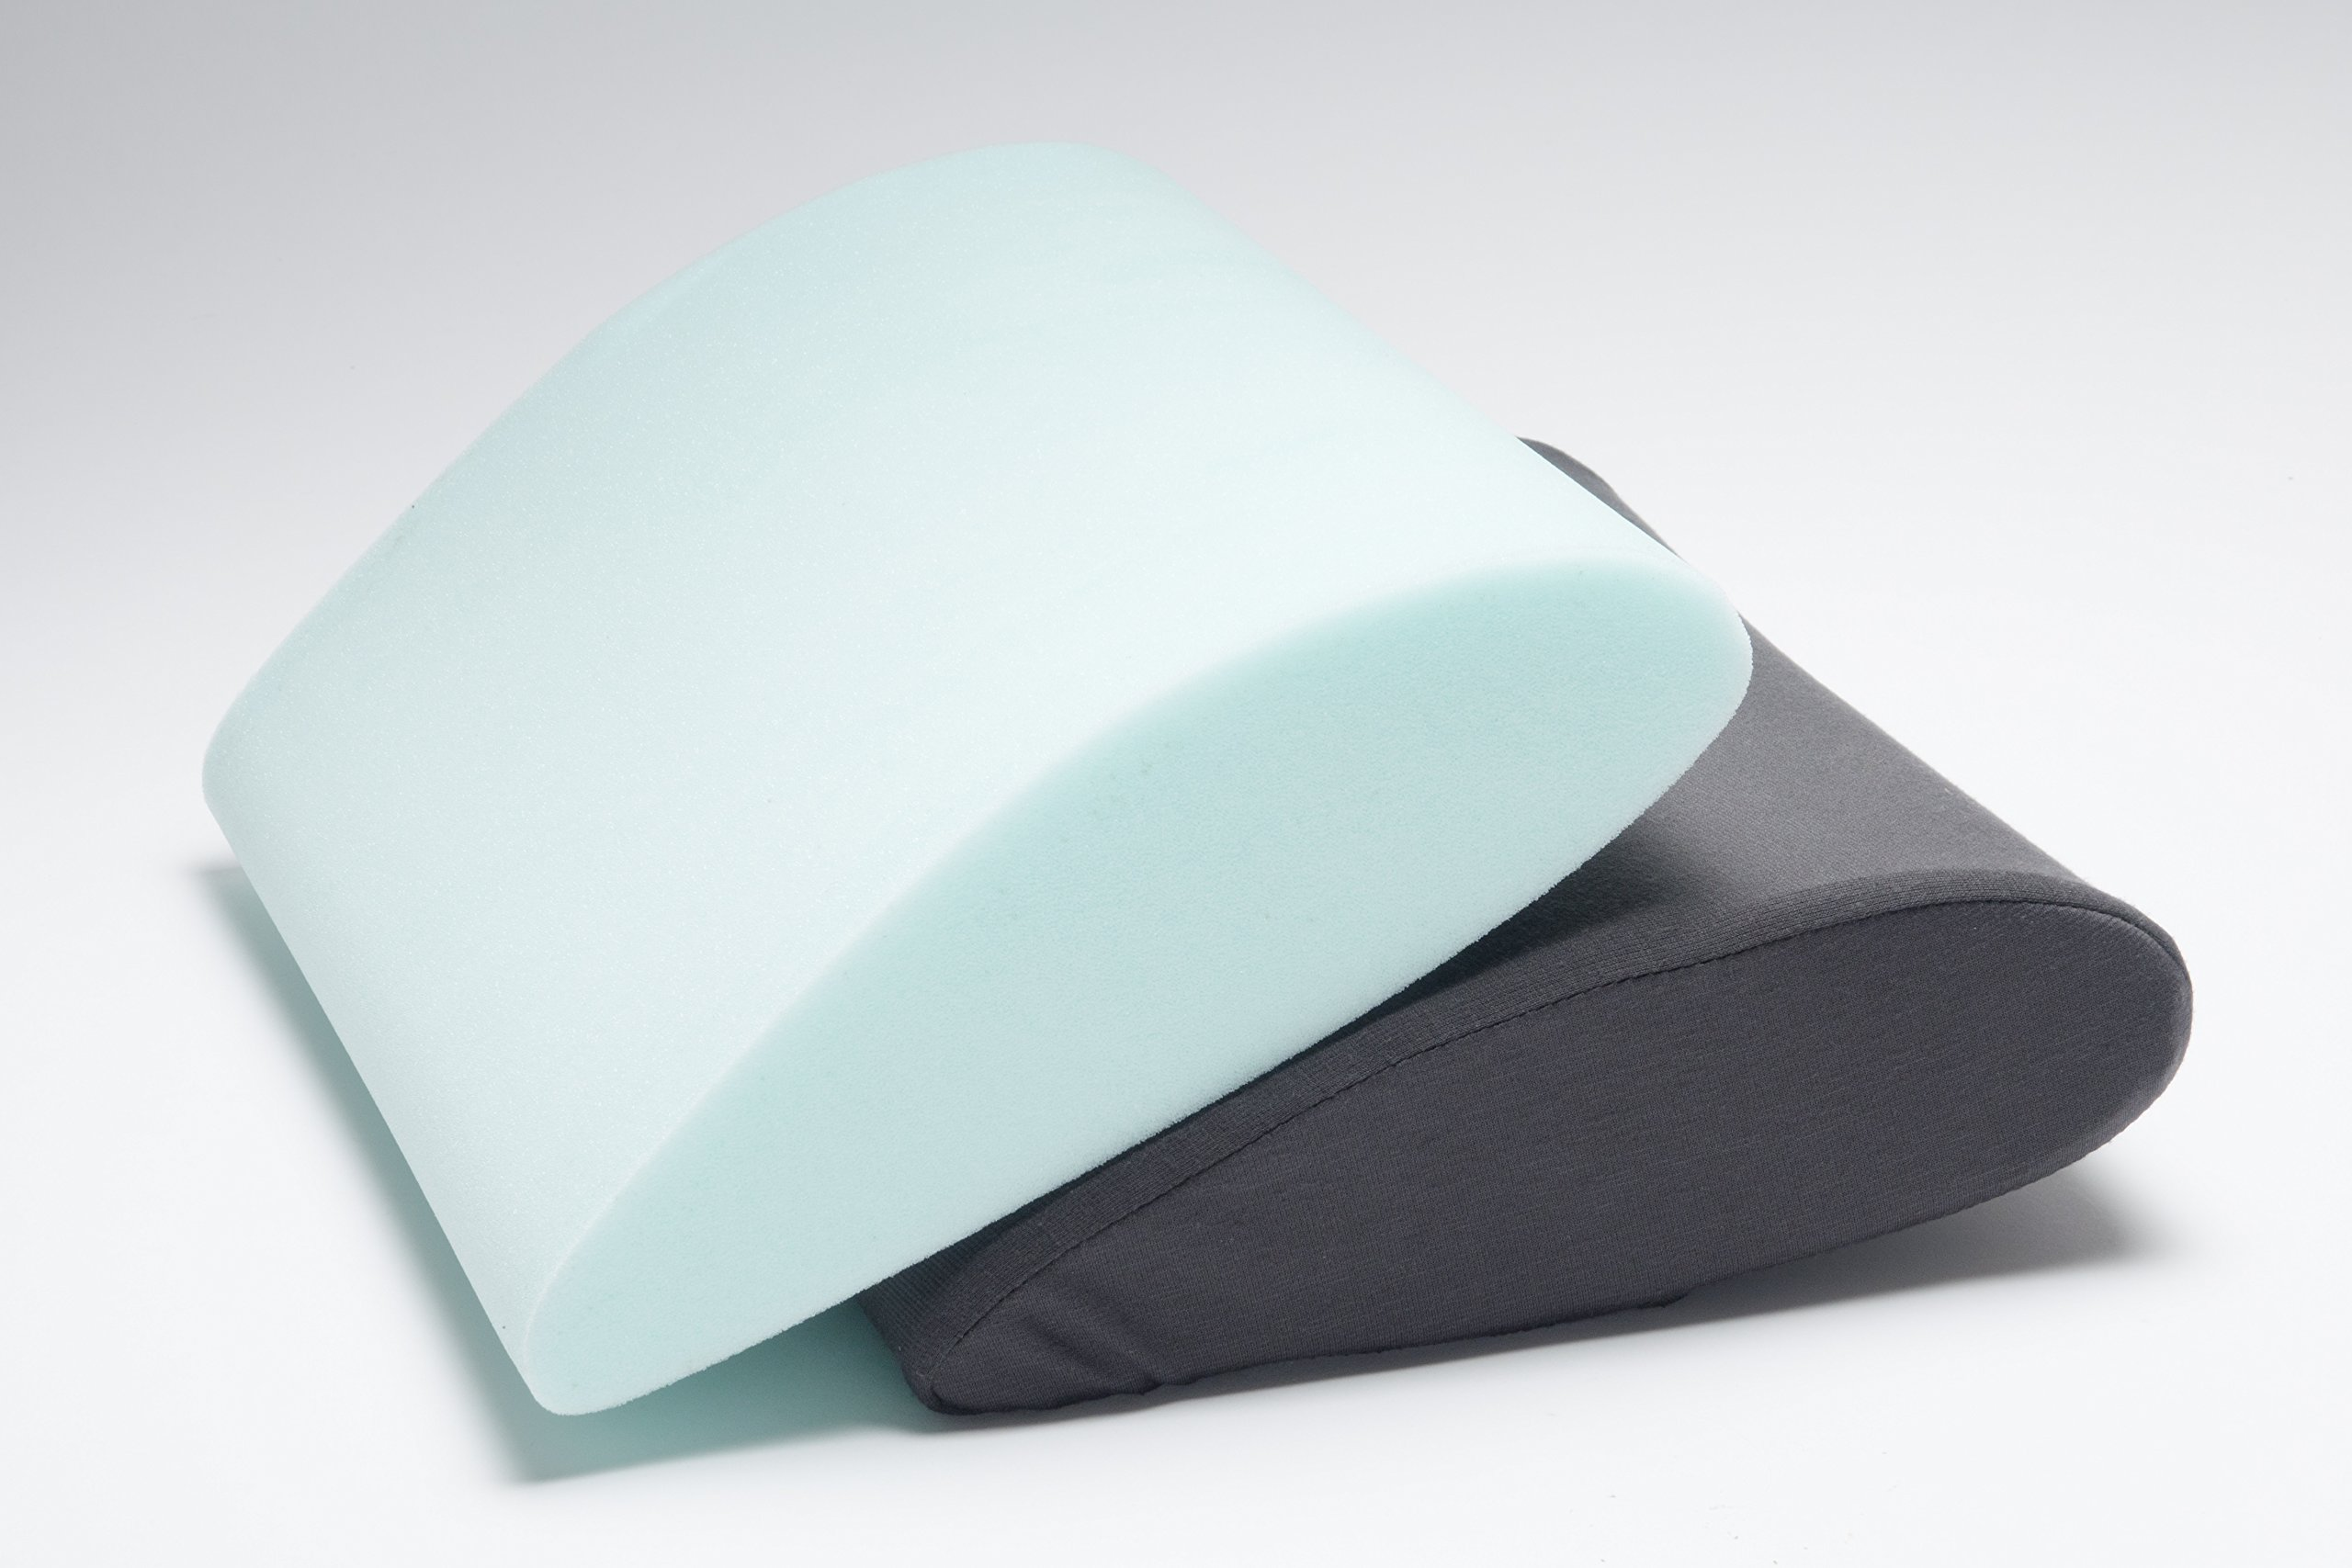 SITTS Posture Teardrop Serene in Firm or Soft Back Support Pillow. Enjoy Pain-Free Sitting with Memory Foam That is Highly Resilient. Microscopic Air Bubbles w/o Flattening Out